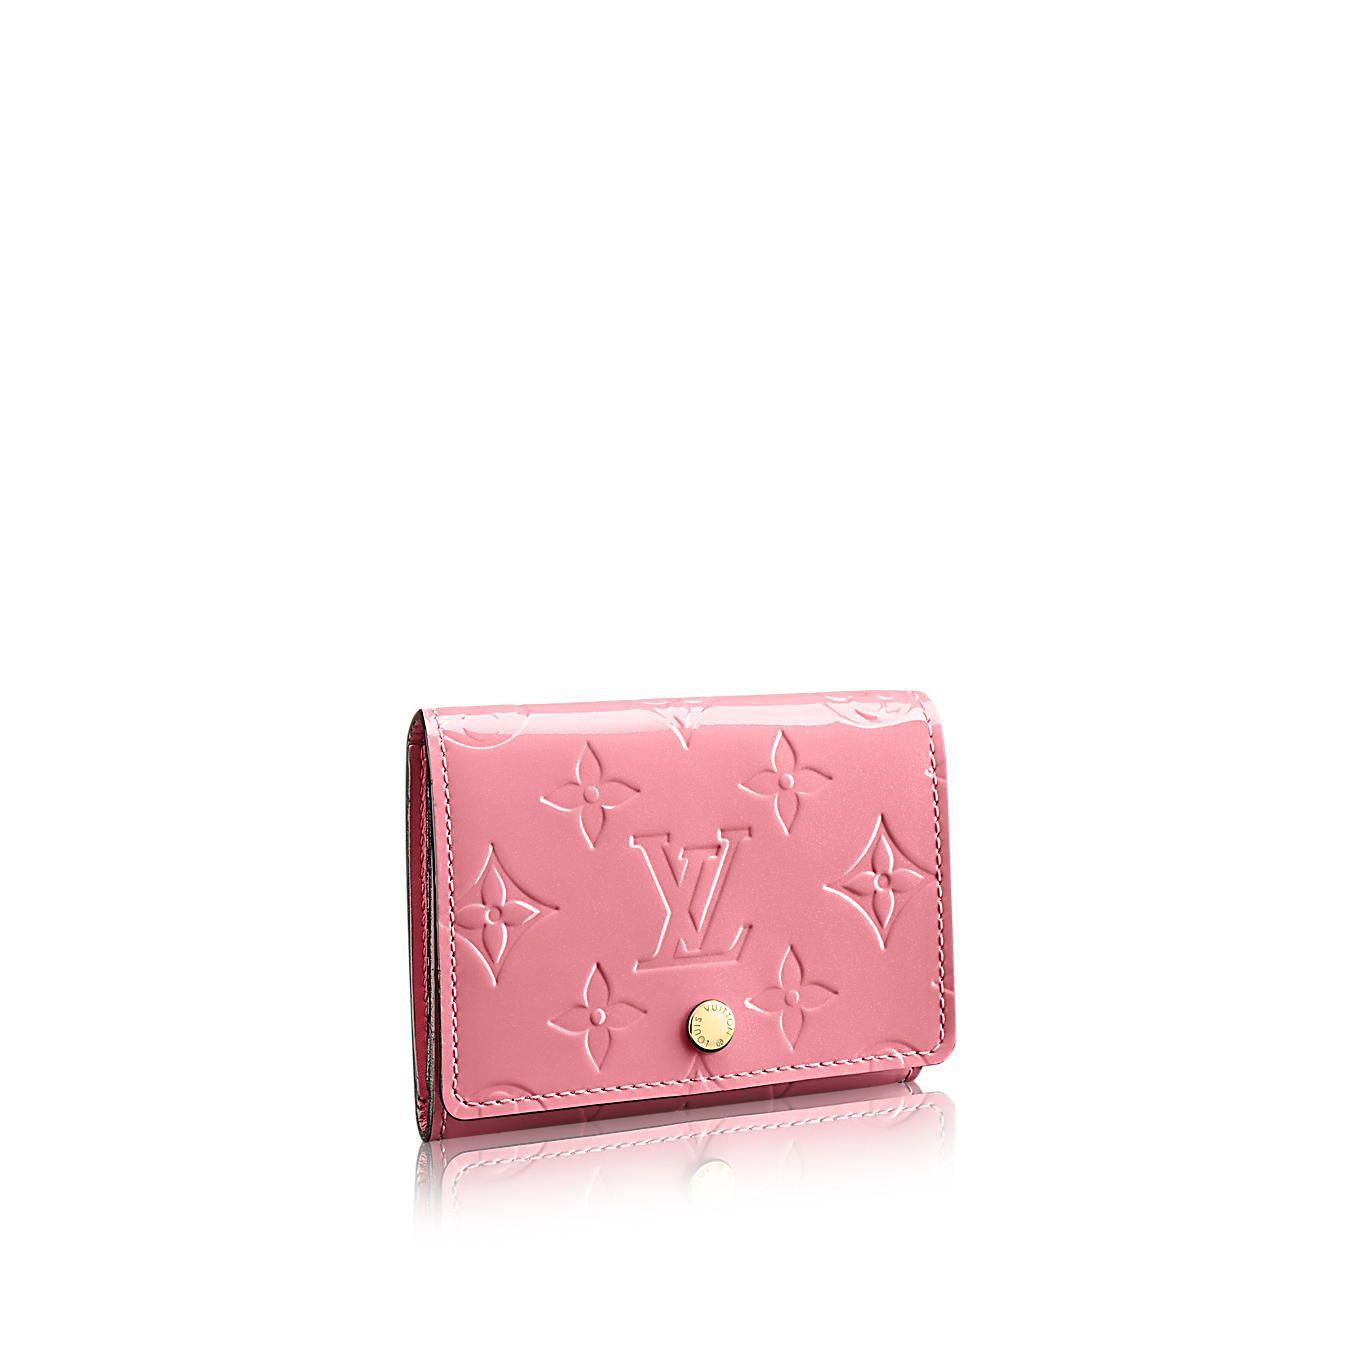 Business card holder monogram vernis in womens small leather goods business card holder monogram vernis in womens small leather goods key and card holders collections by colourmoves